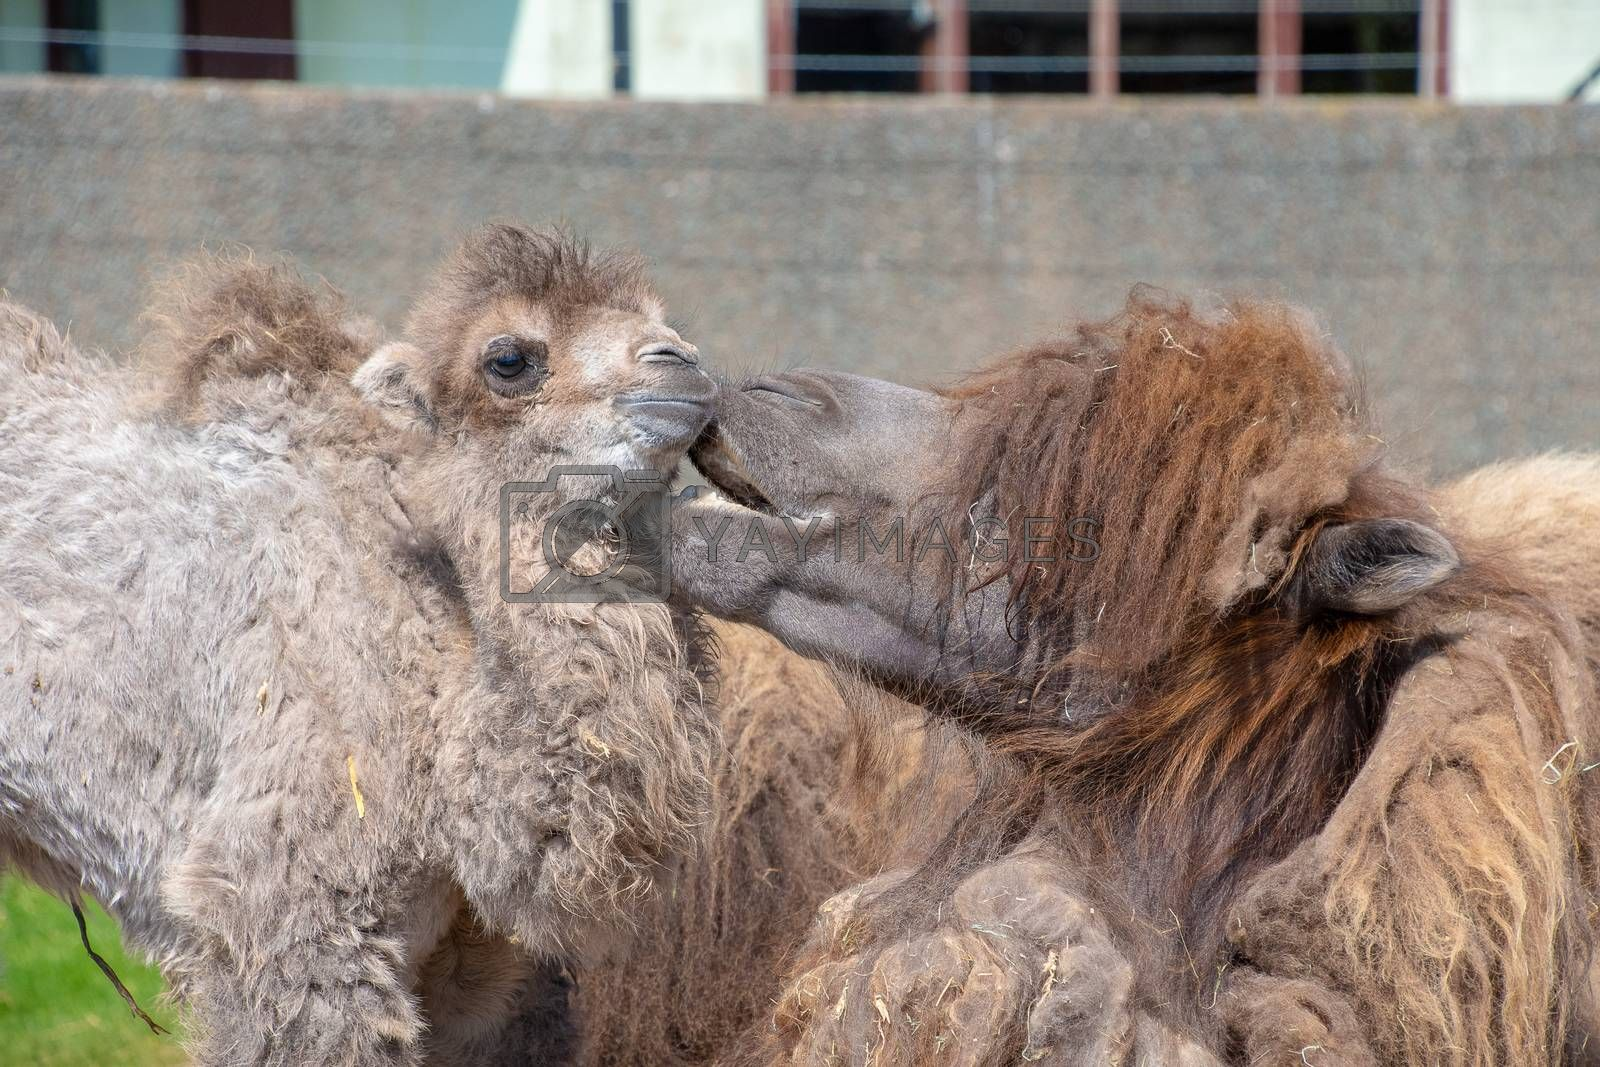 Bactrian Camel with her baby in the sunshine